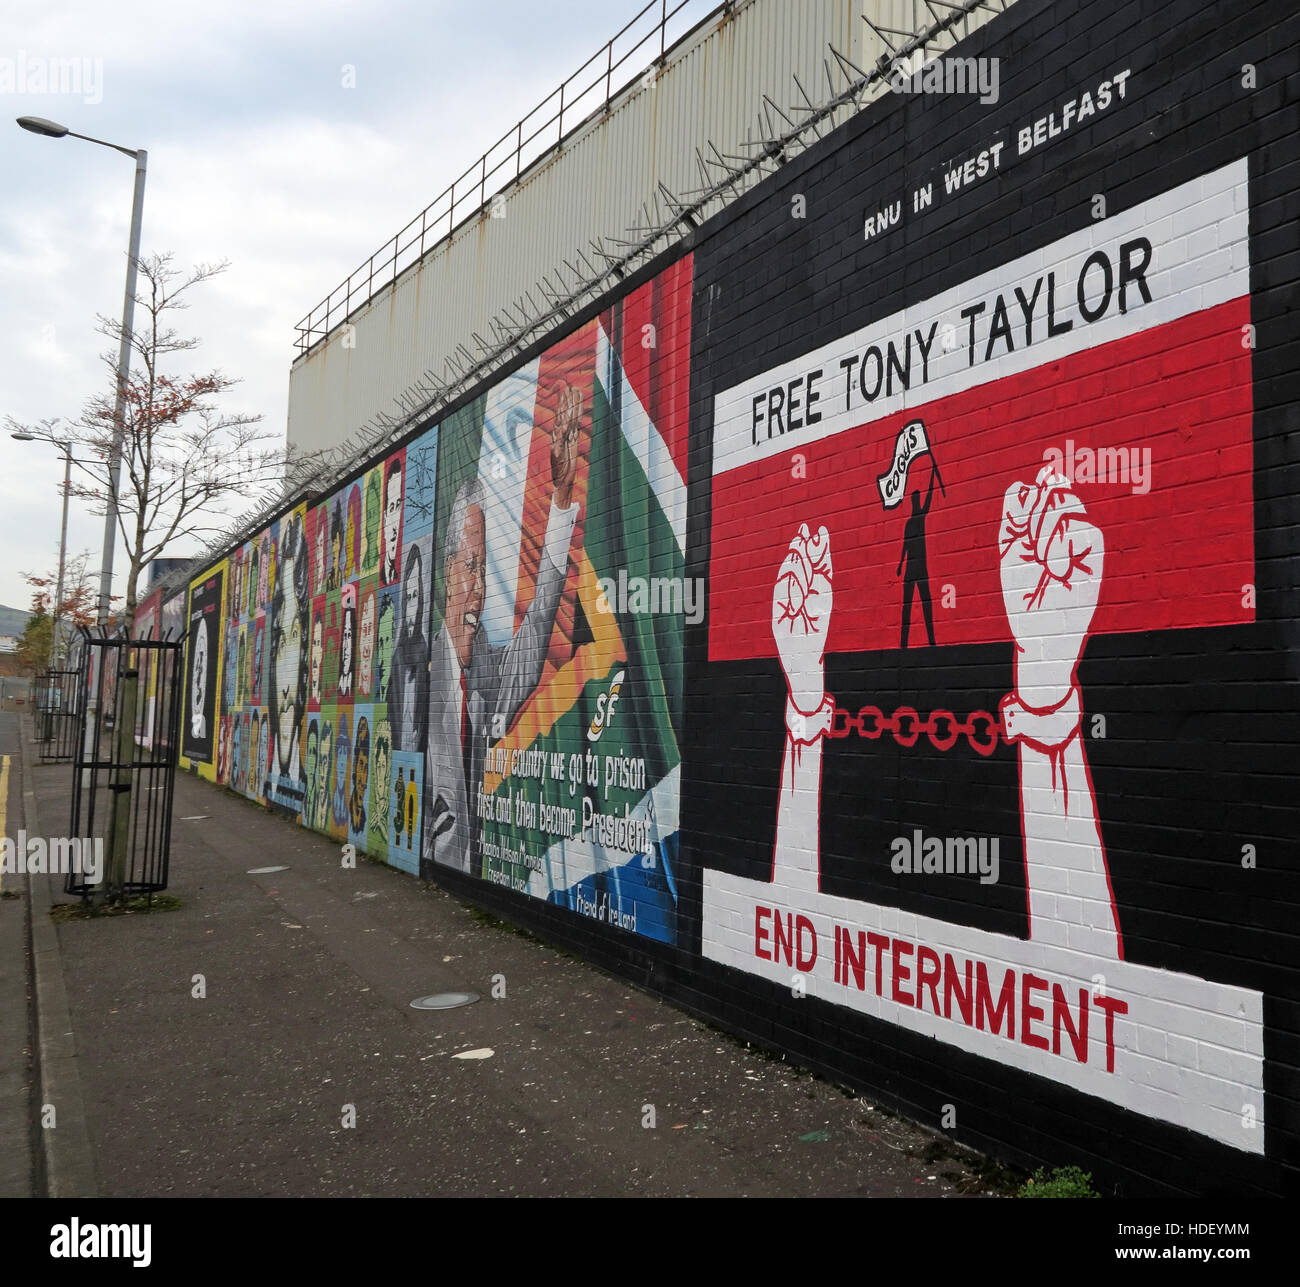 Free Tony Taylor - End Internment - International Peace Wall,Cupar Way,West Belfast , Northern Ireland, UK - Stock Image